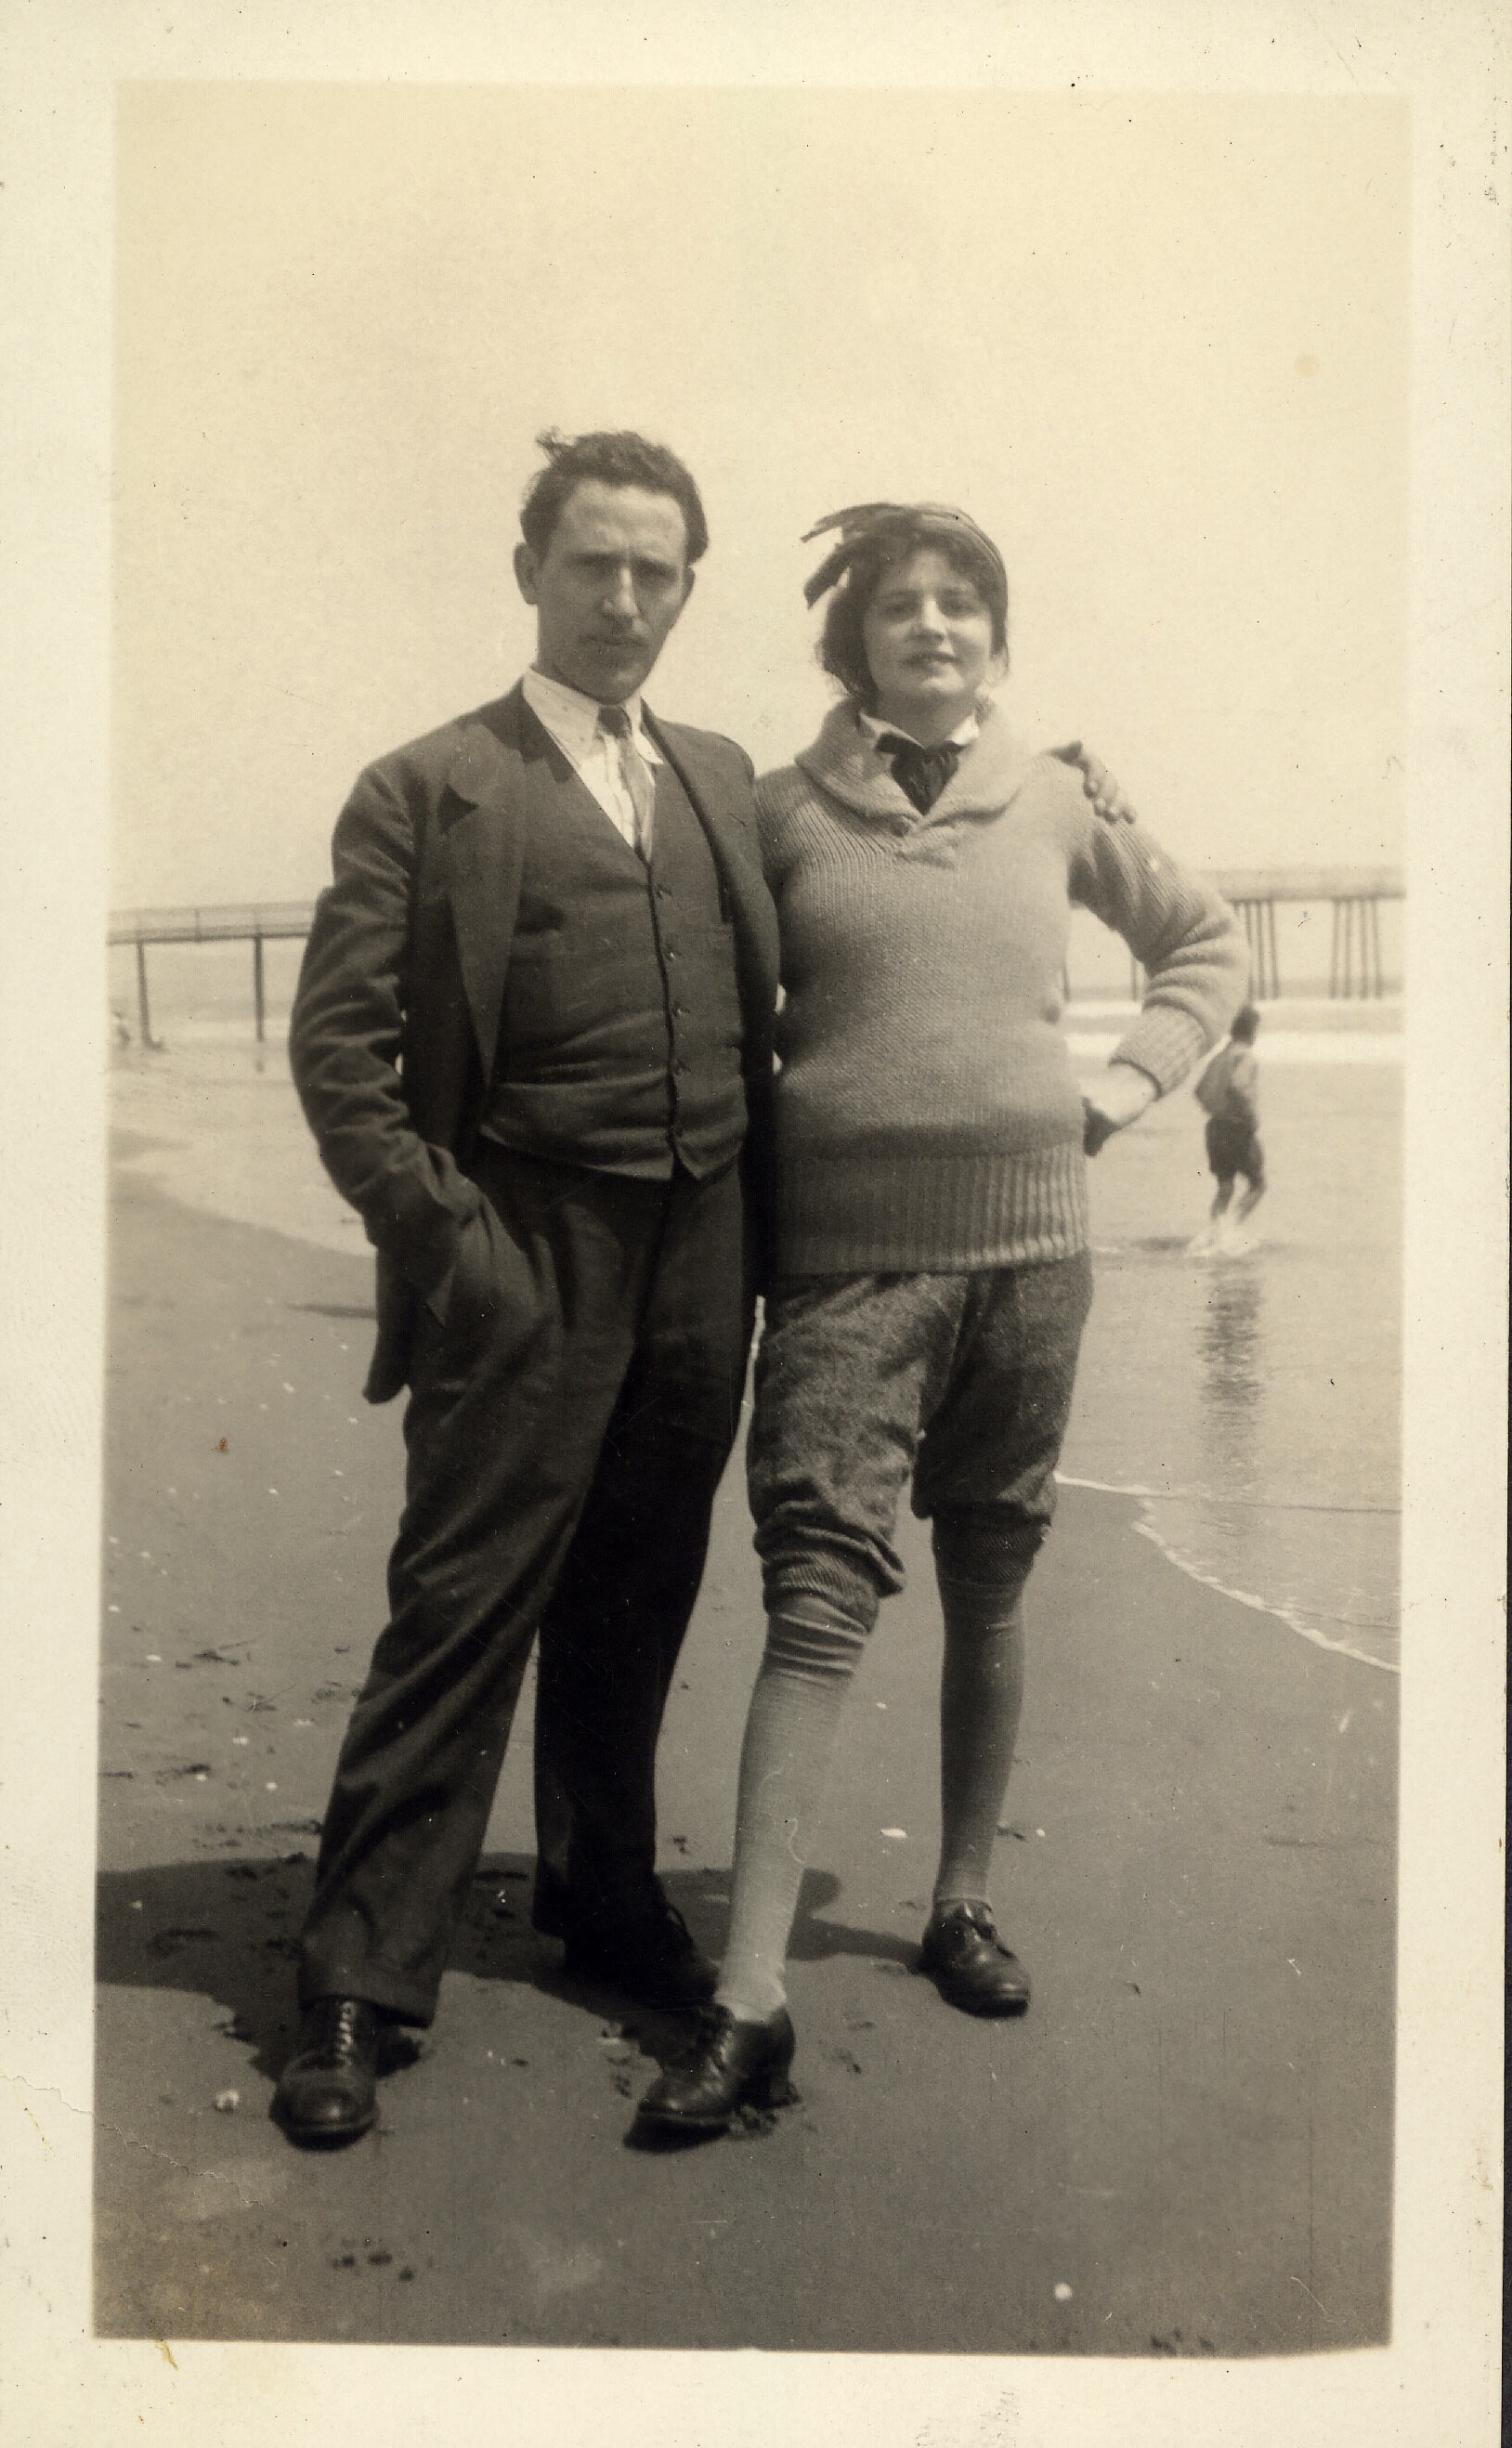 Mom and Dad at Santa Monica Beach. My mother was pregnant at the time. But look at her tie, pants and scarf in her hair.